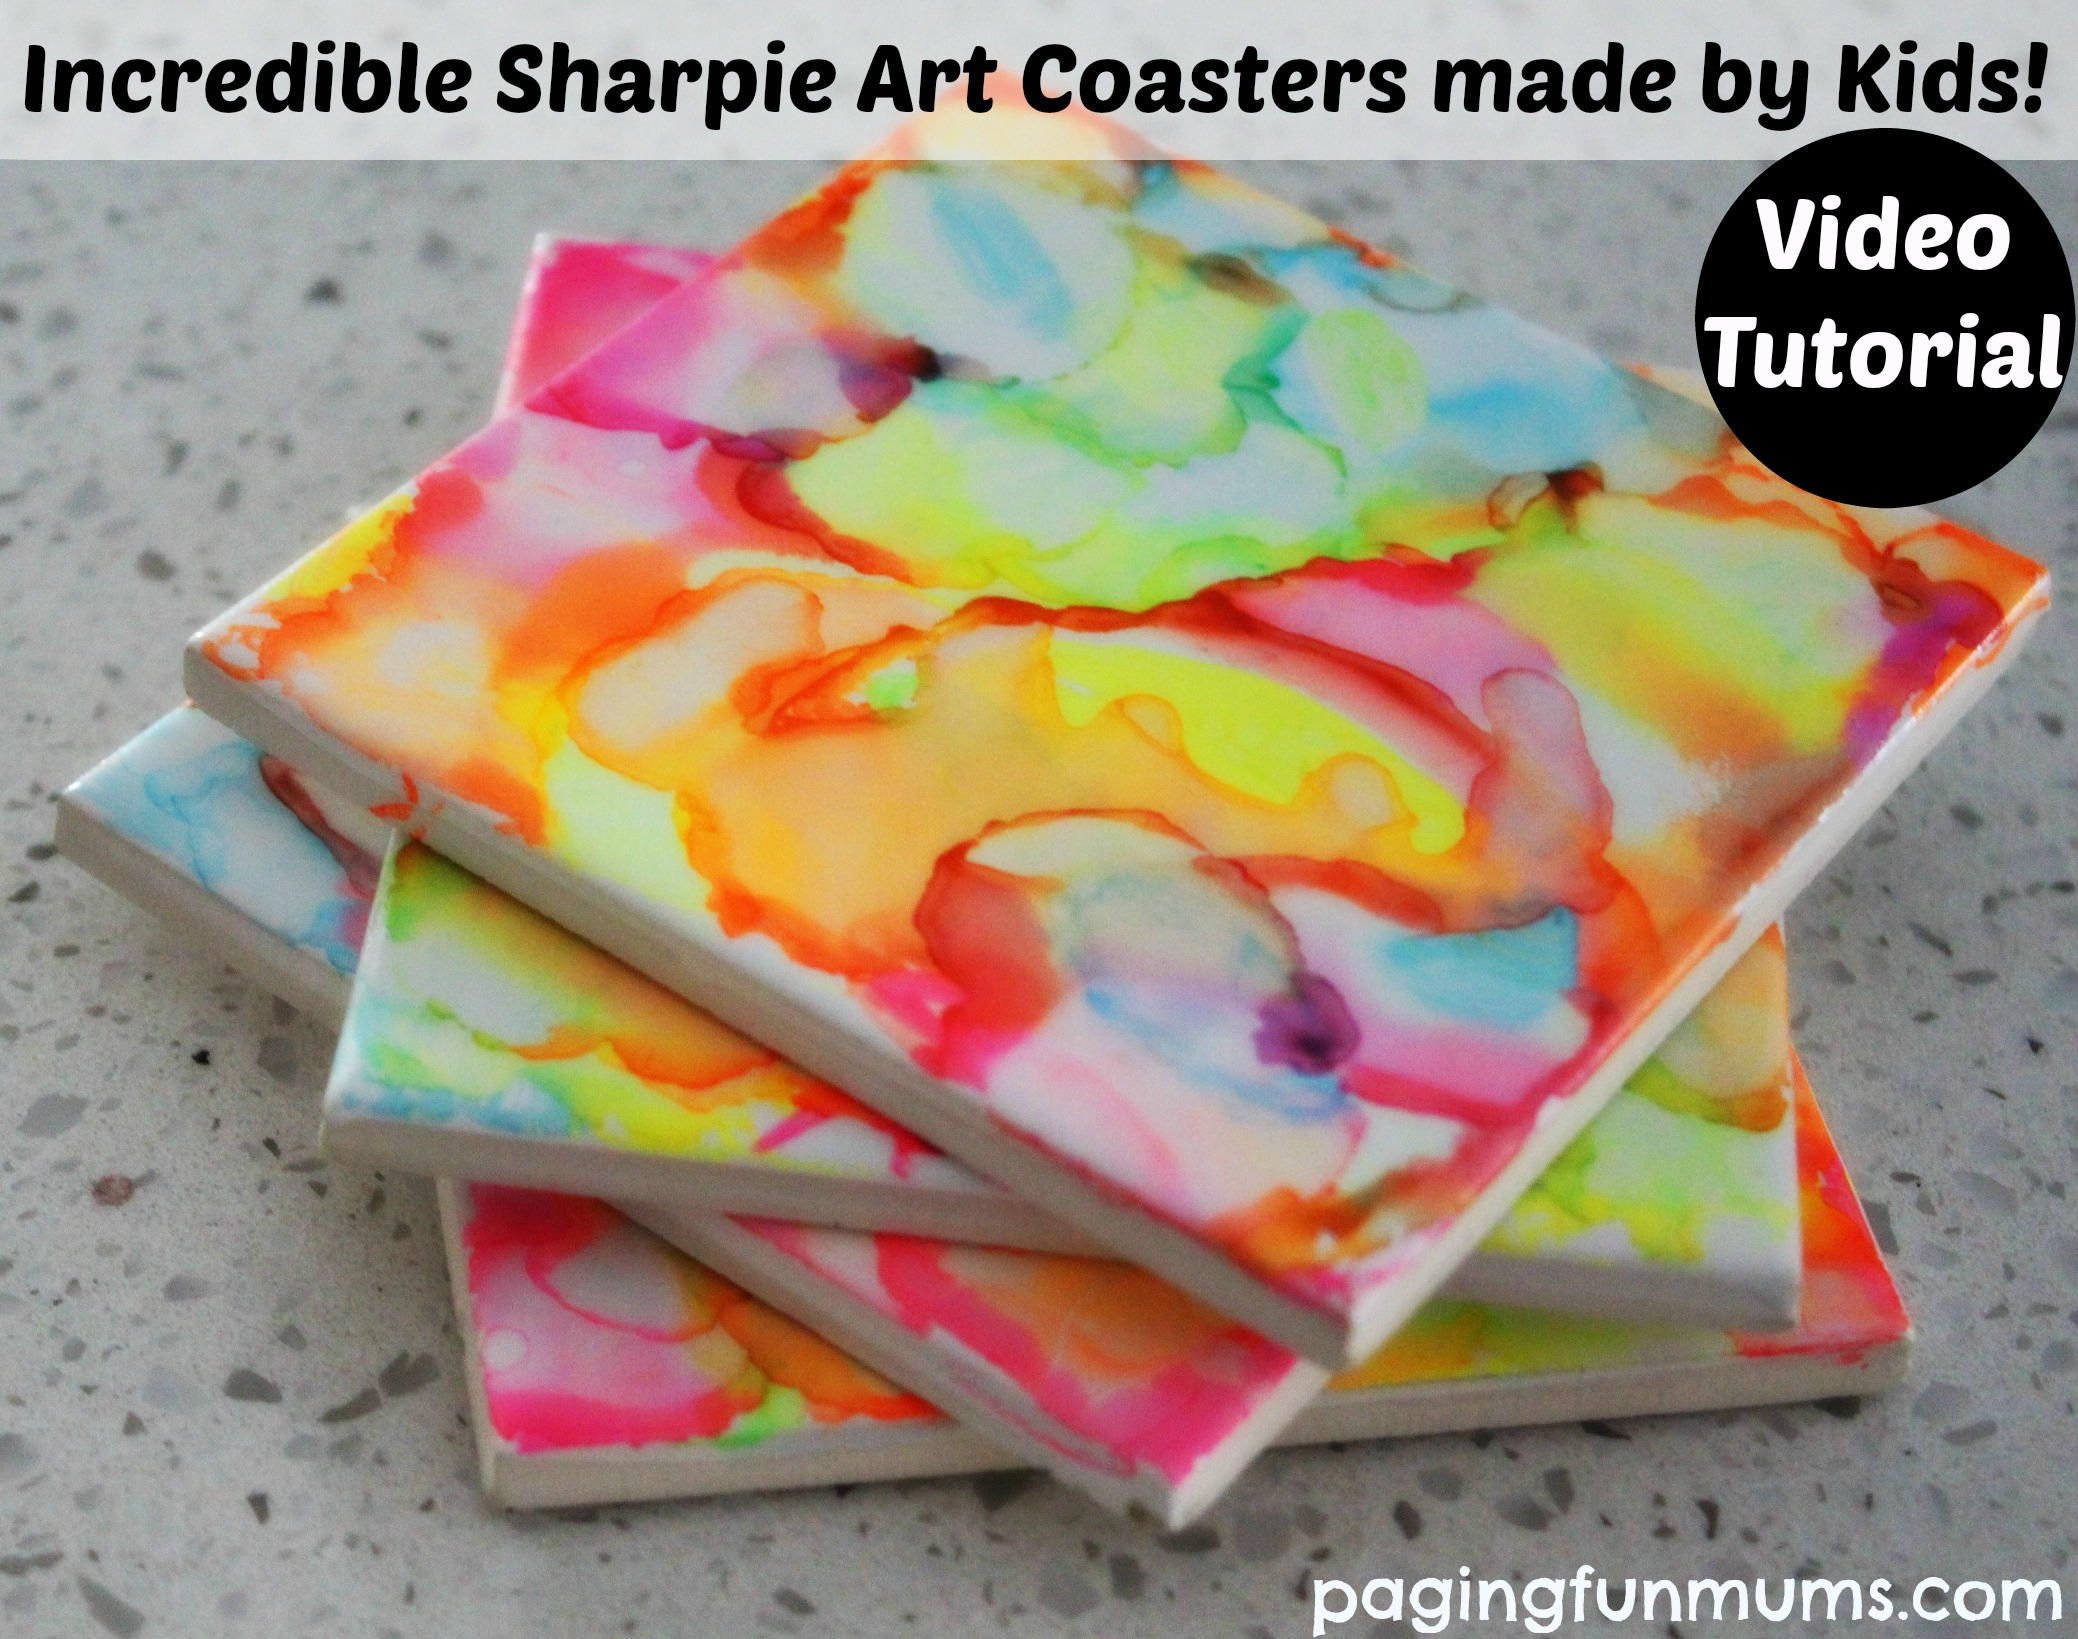 Incredible sharpie art coasters